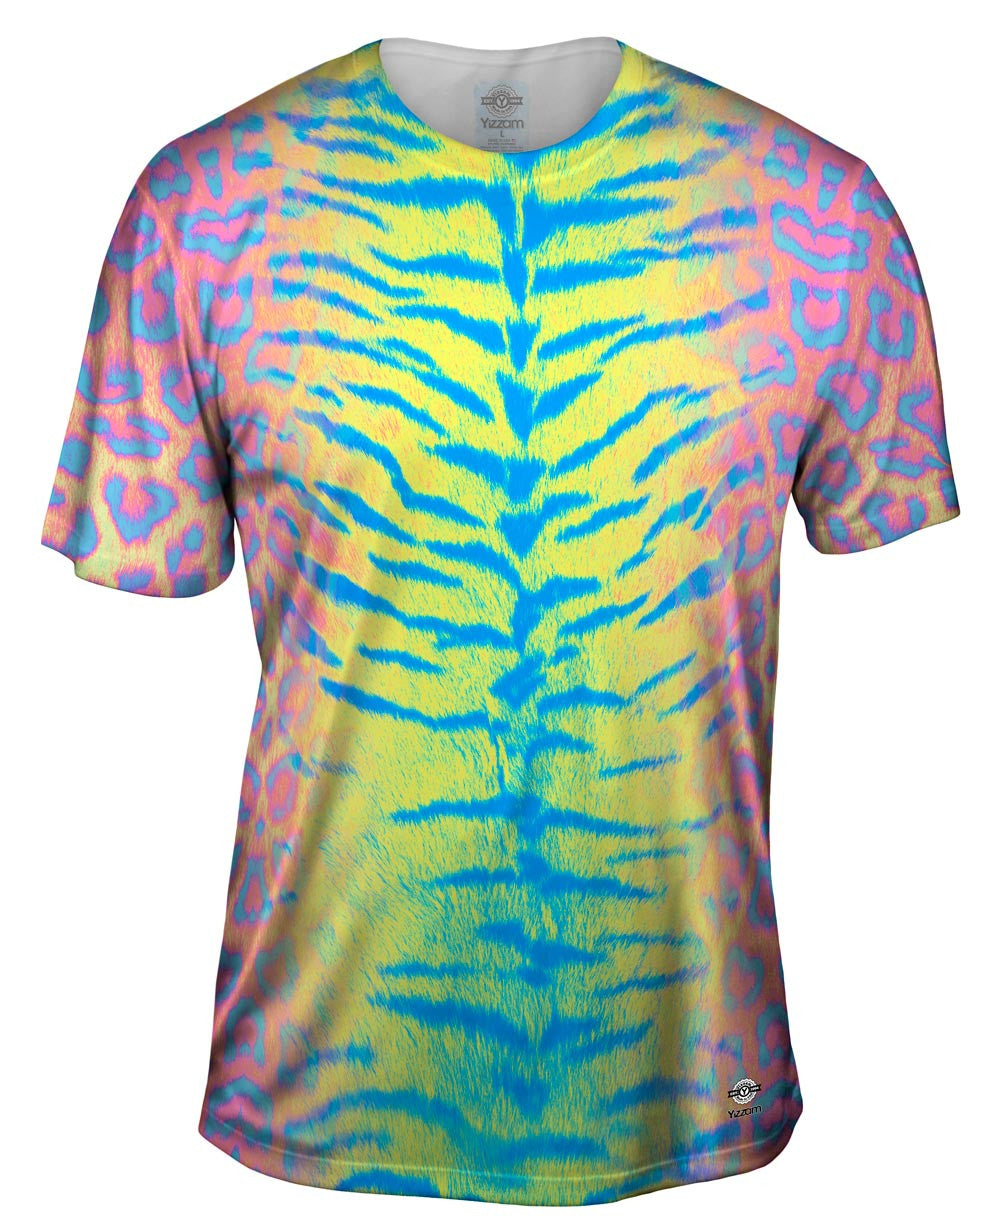 Tiger Leopard Skin Pink Yellow Blue